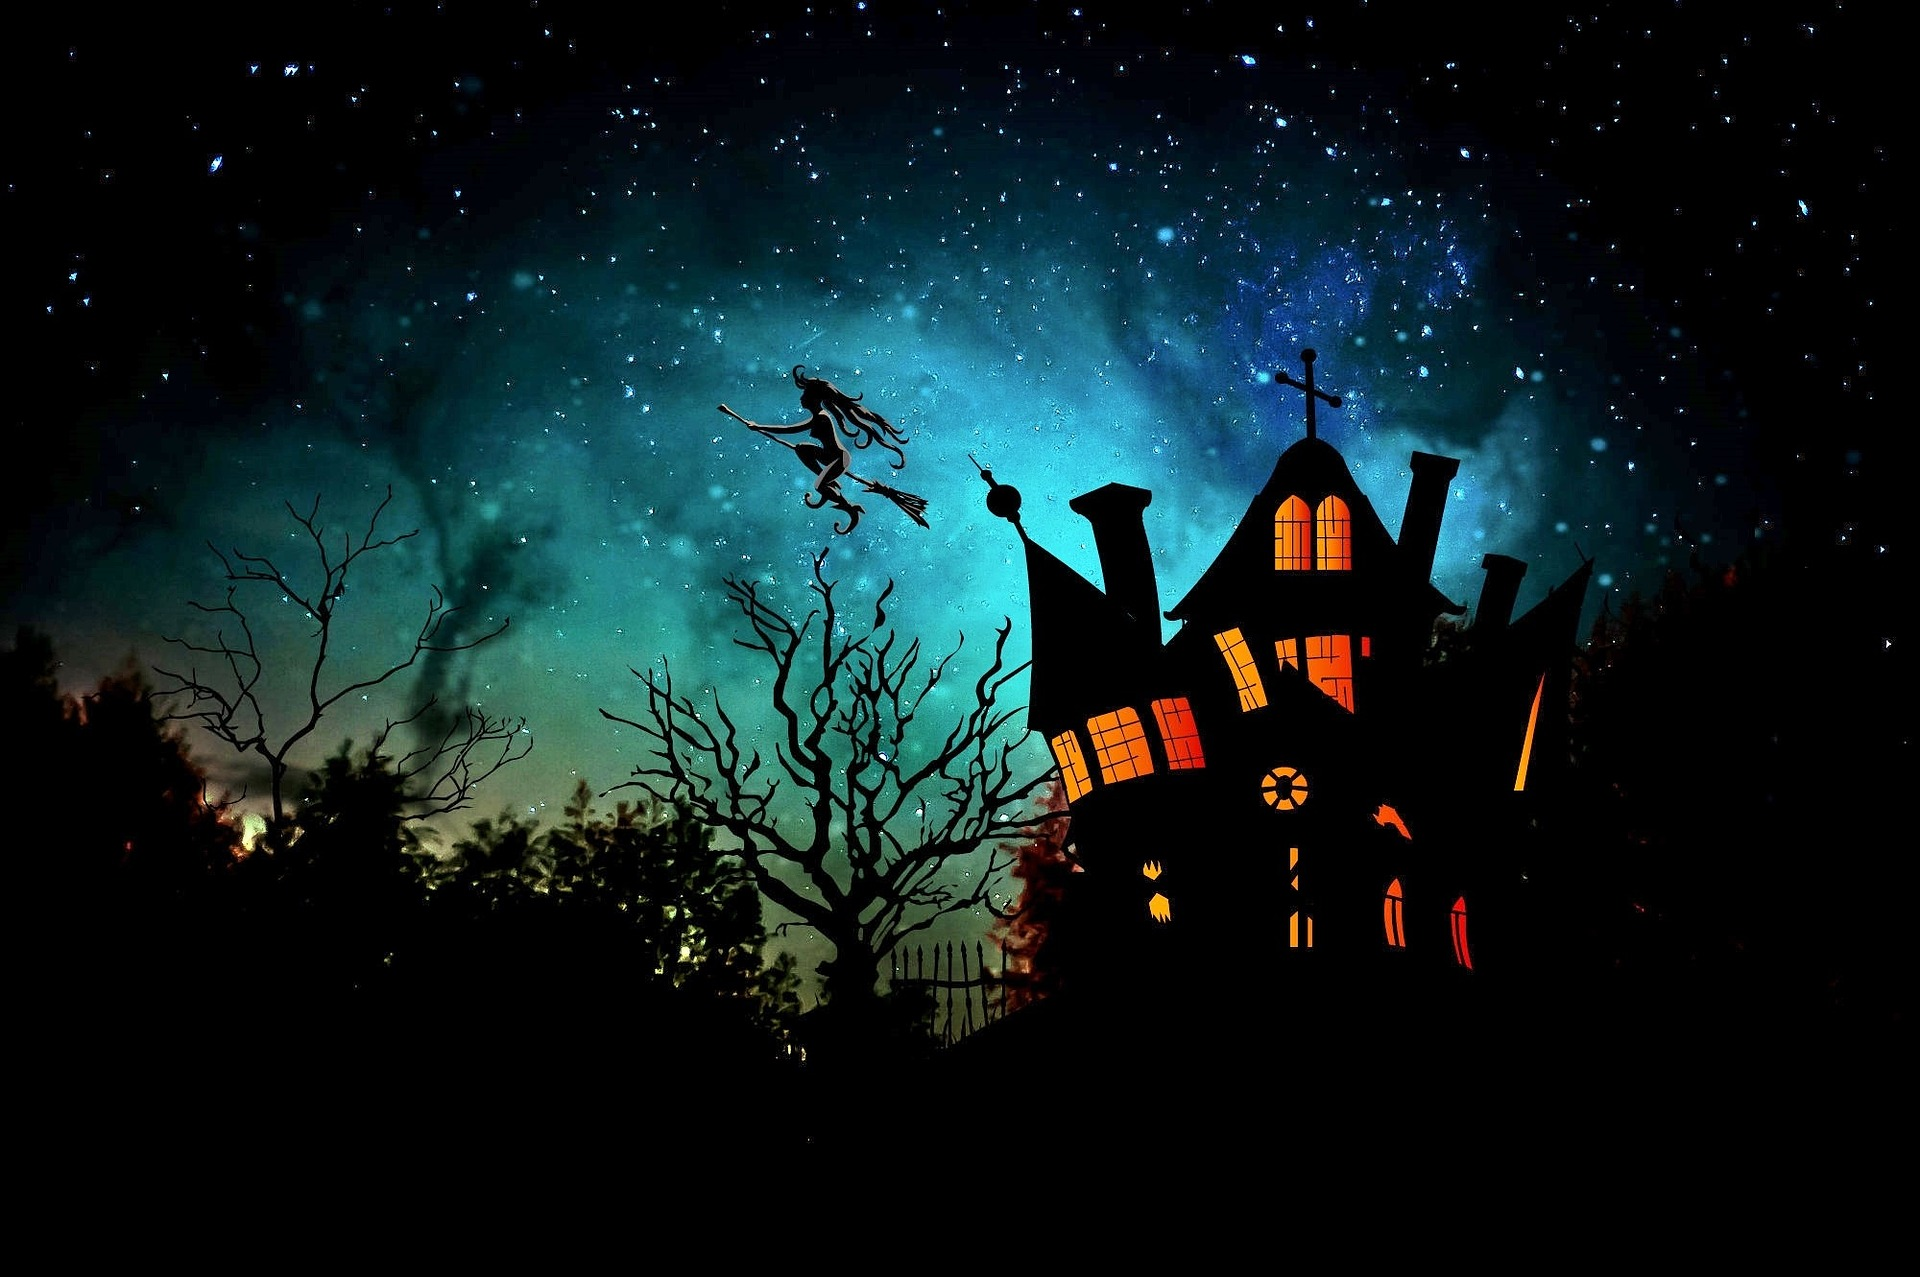 The Witching Hour Poem